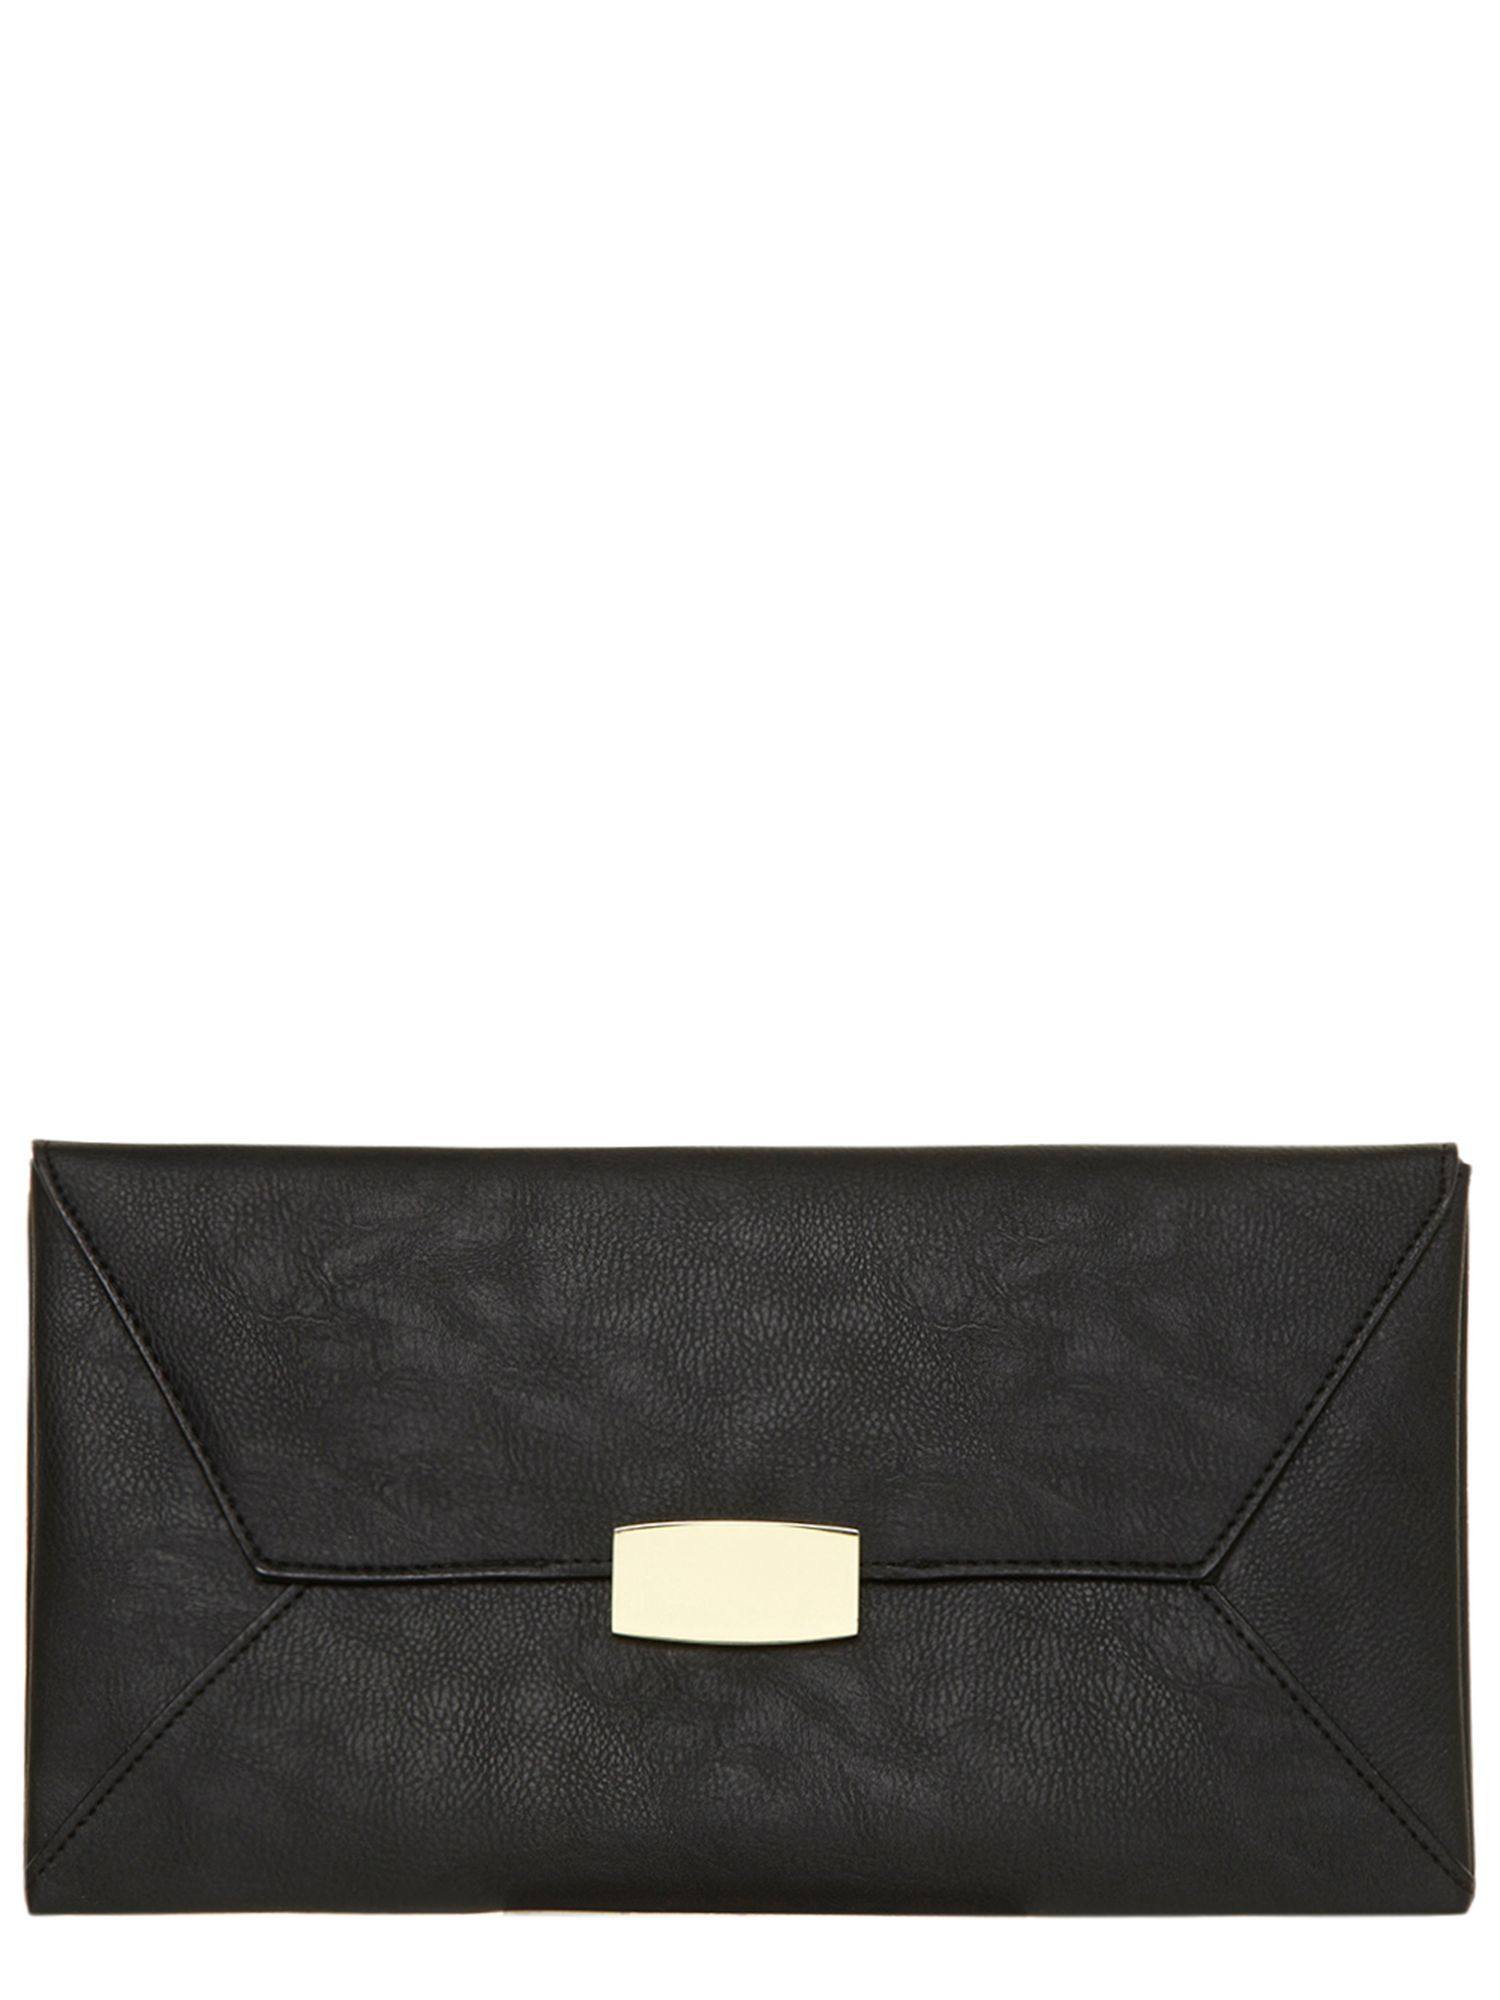 Lock Envelope Clutch